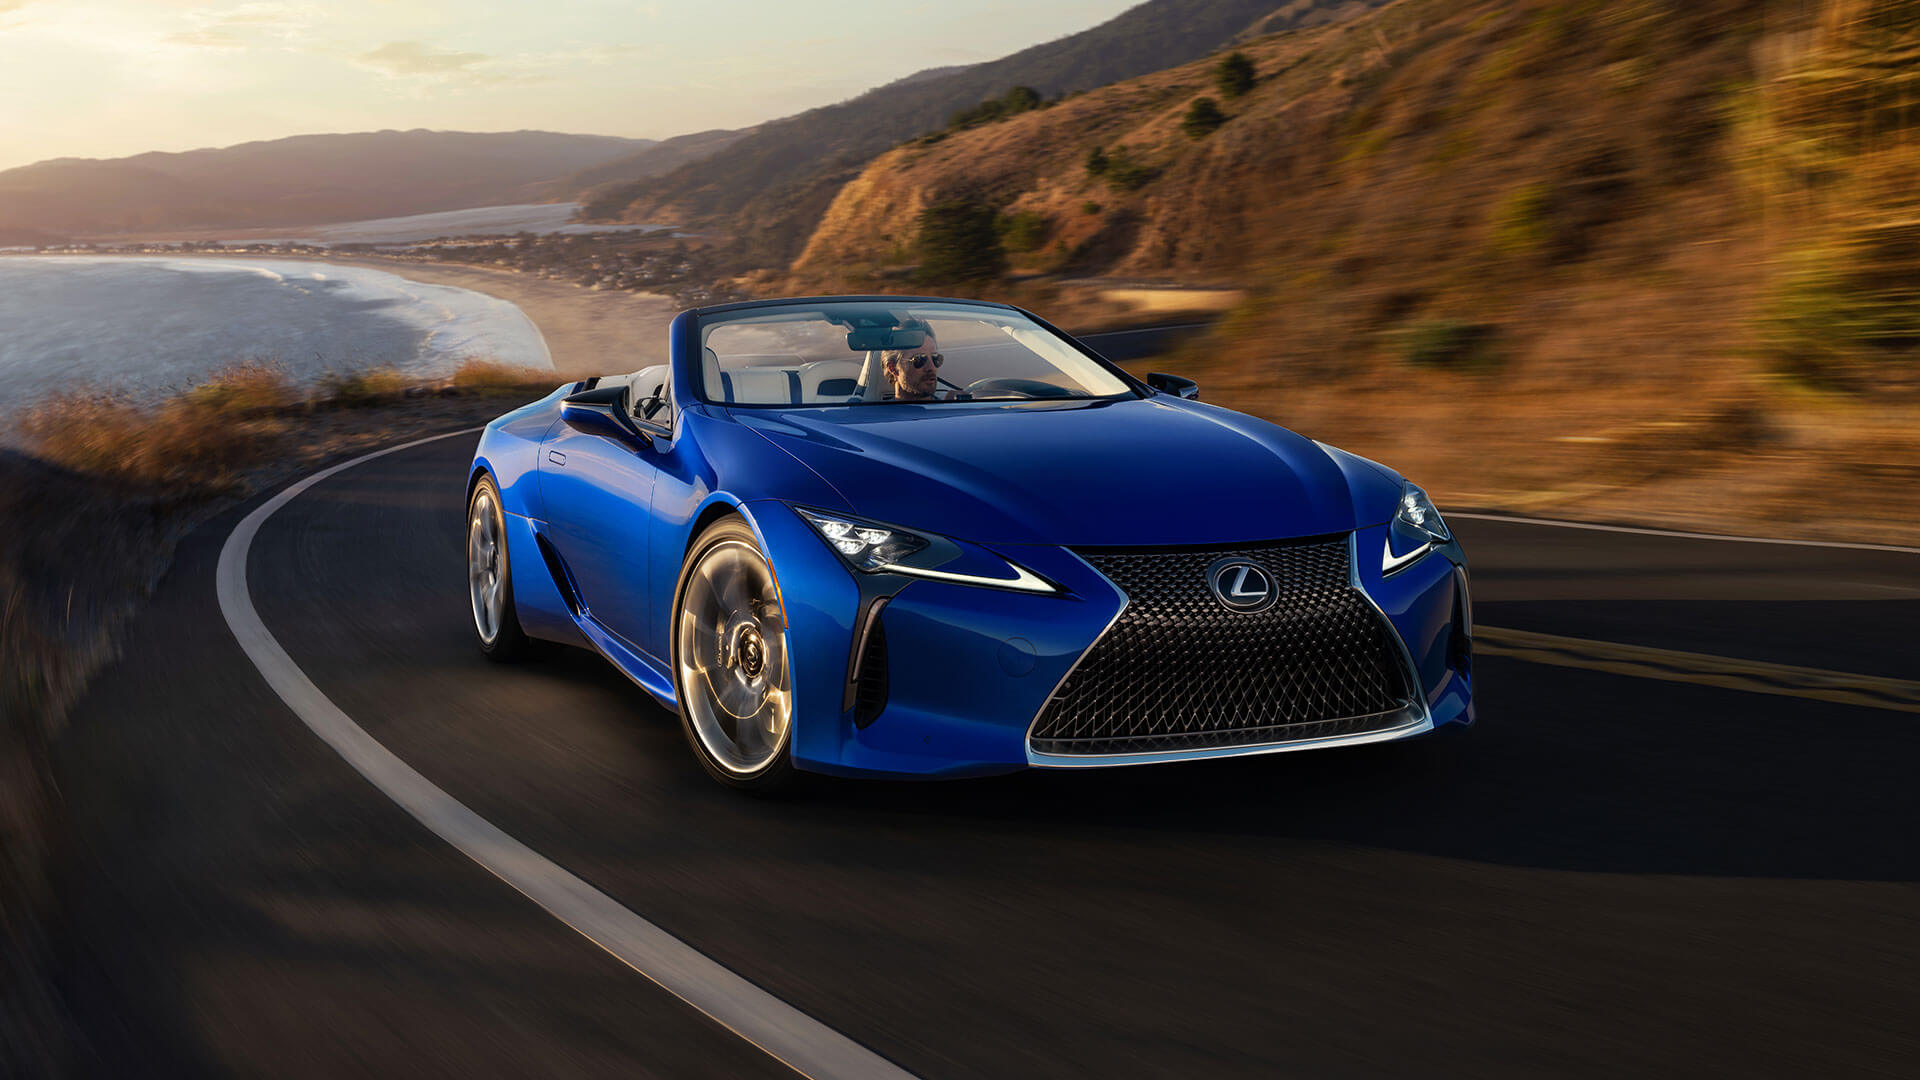 2020 lc convertible gallery 10